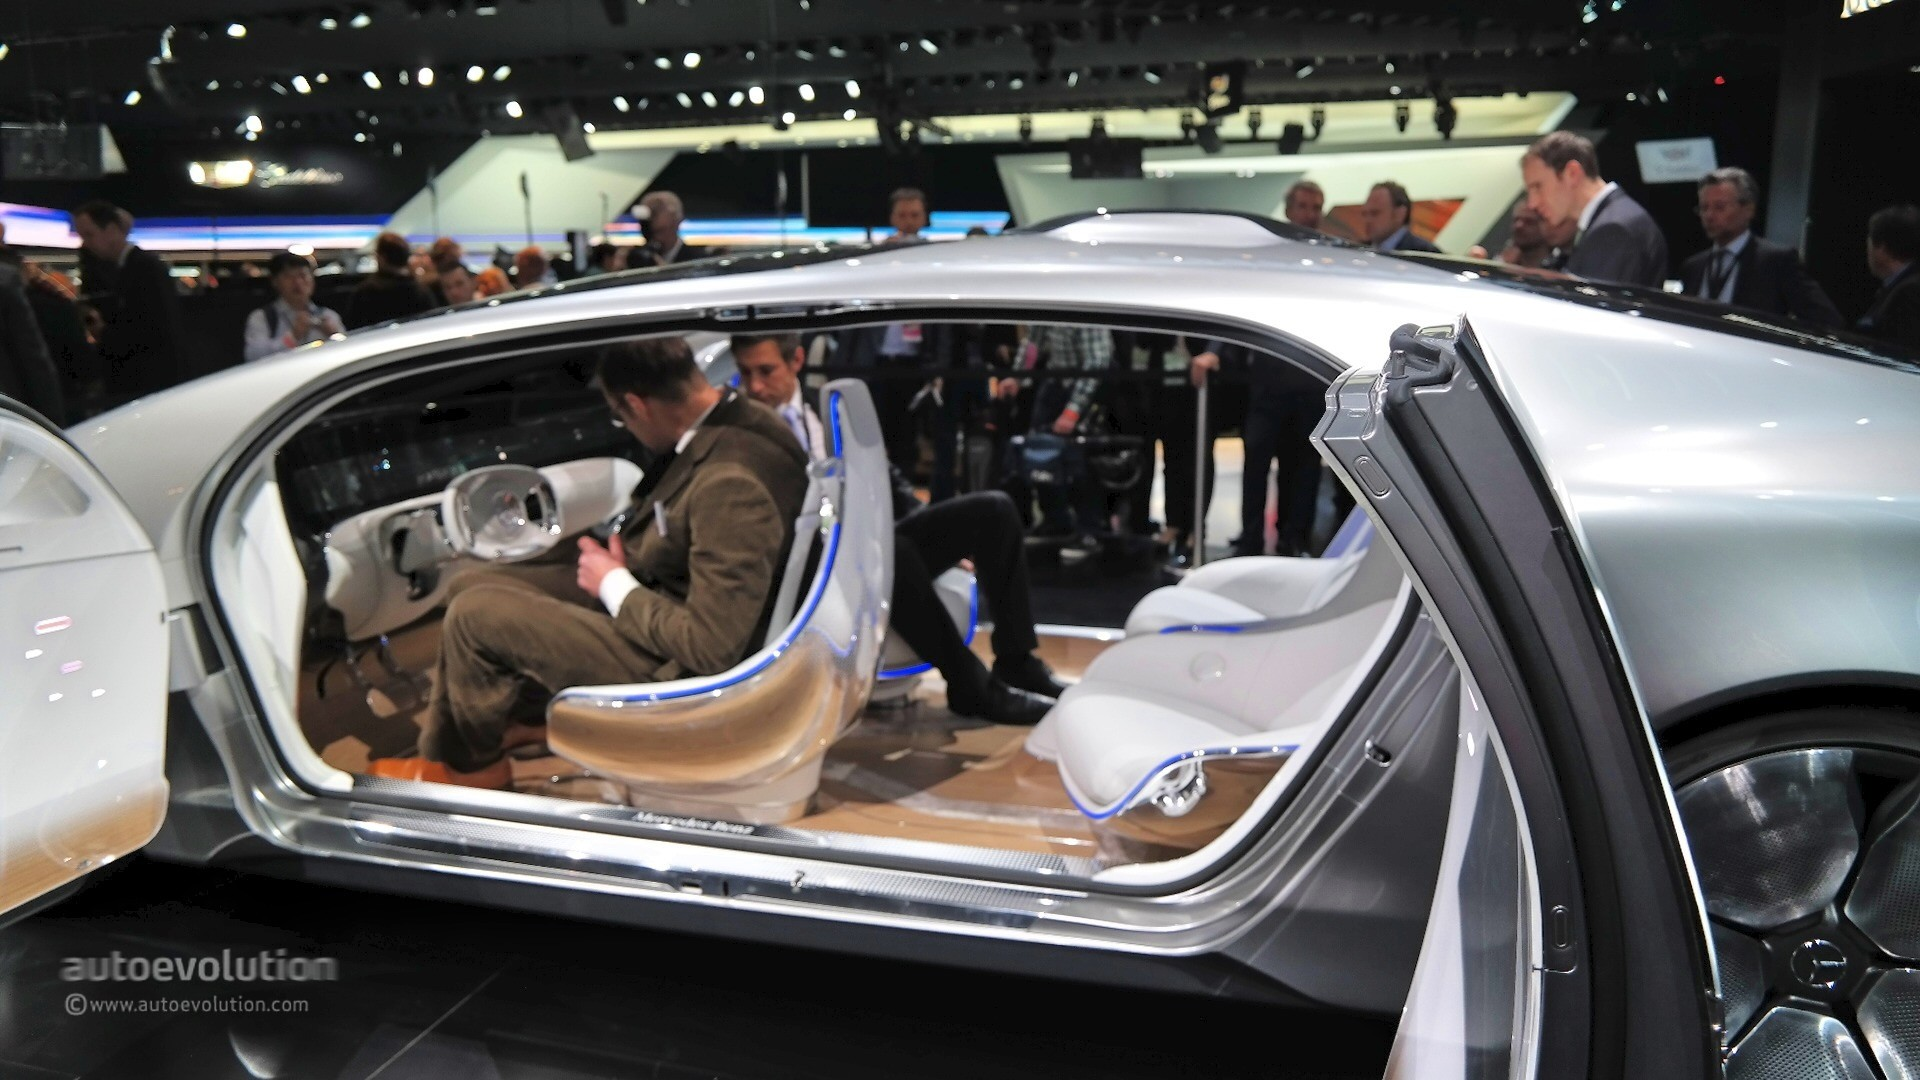 Mercedes Benz F Concept Previews The Future At Naias Live Photos on mercedes benz f 015